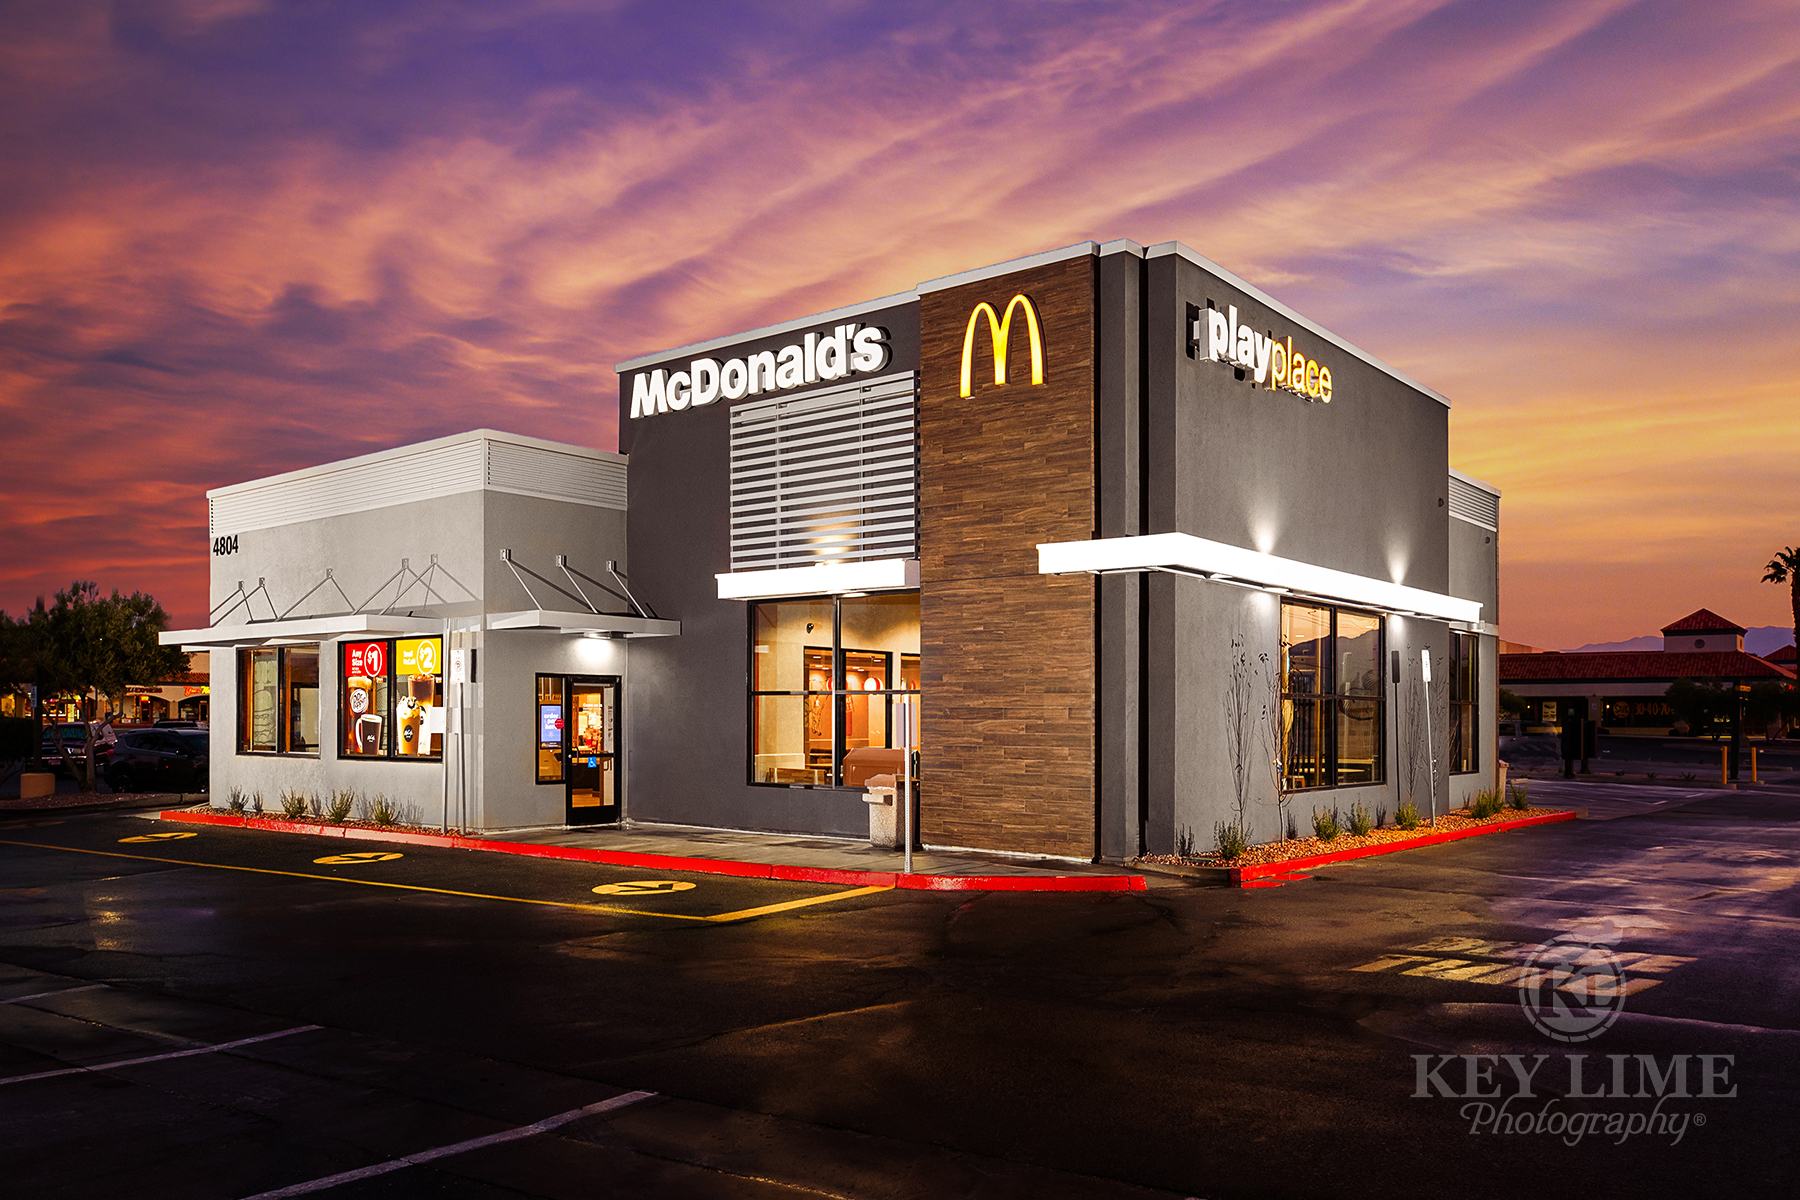 McDonalds commercial architecture photographer photo of restaurant. Warm sunrise with wet, reflective driveway.